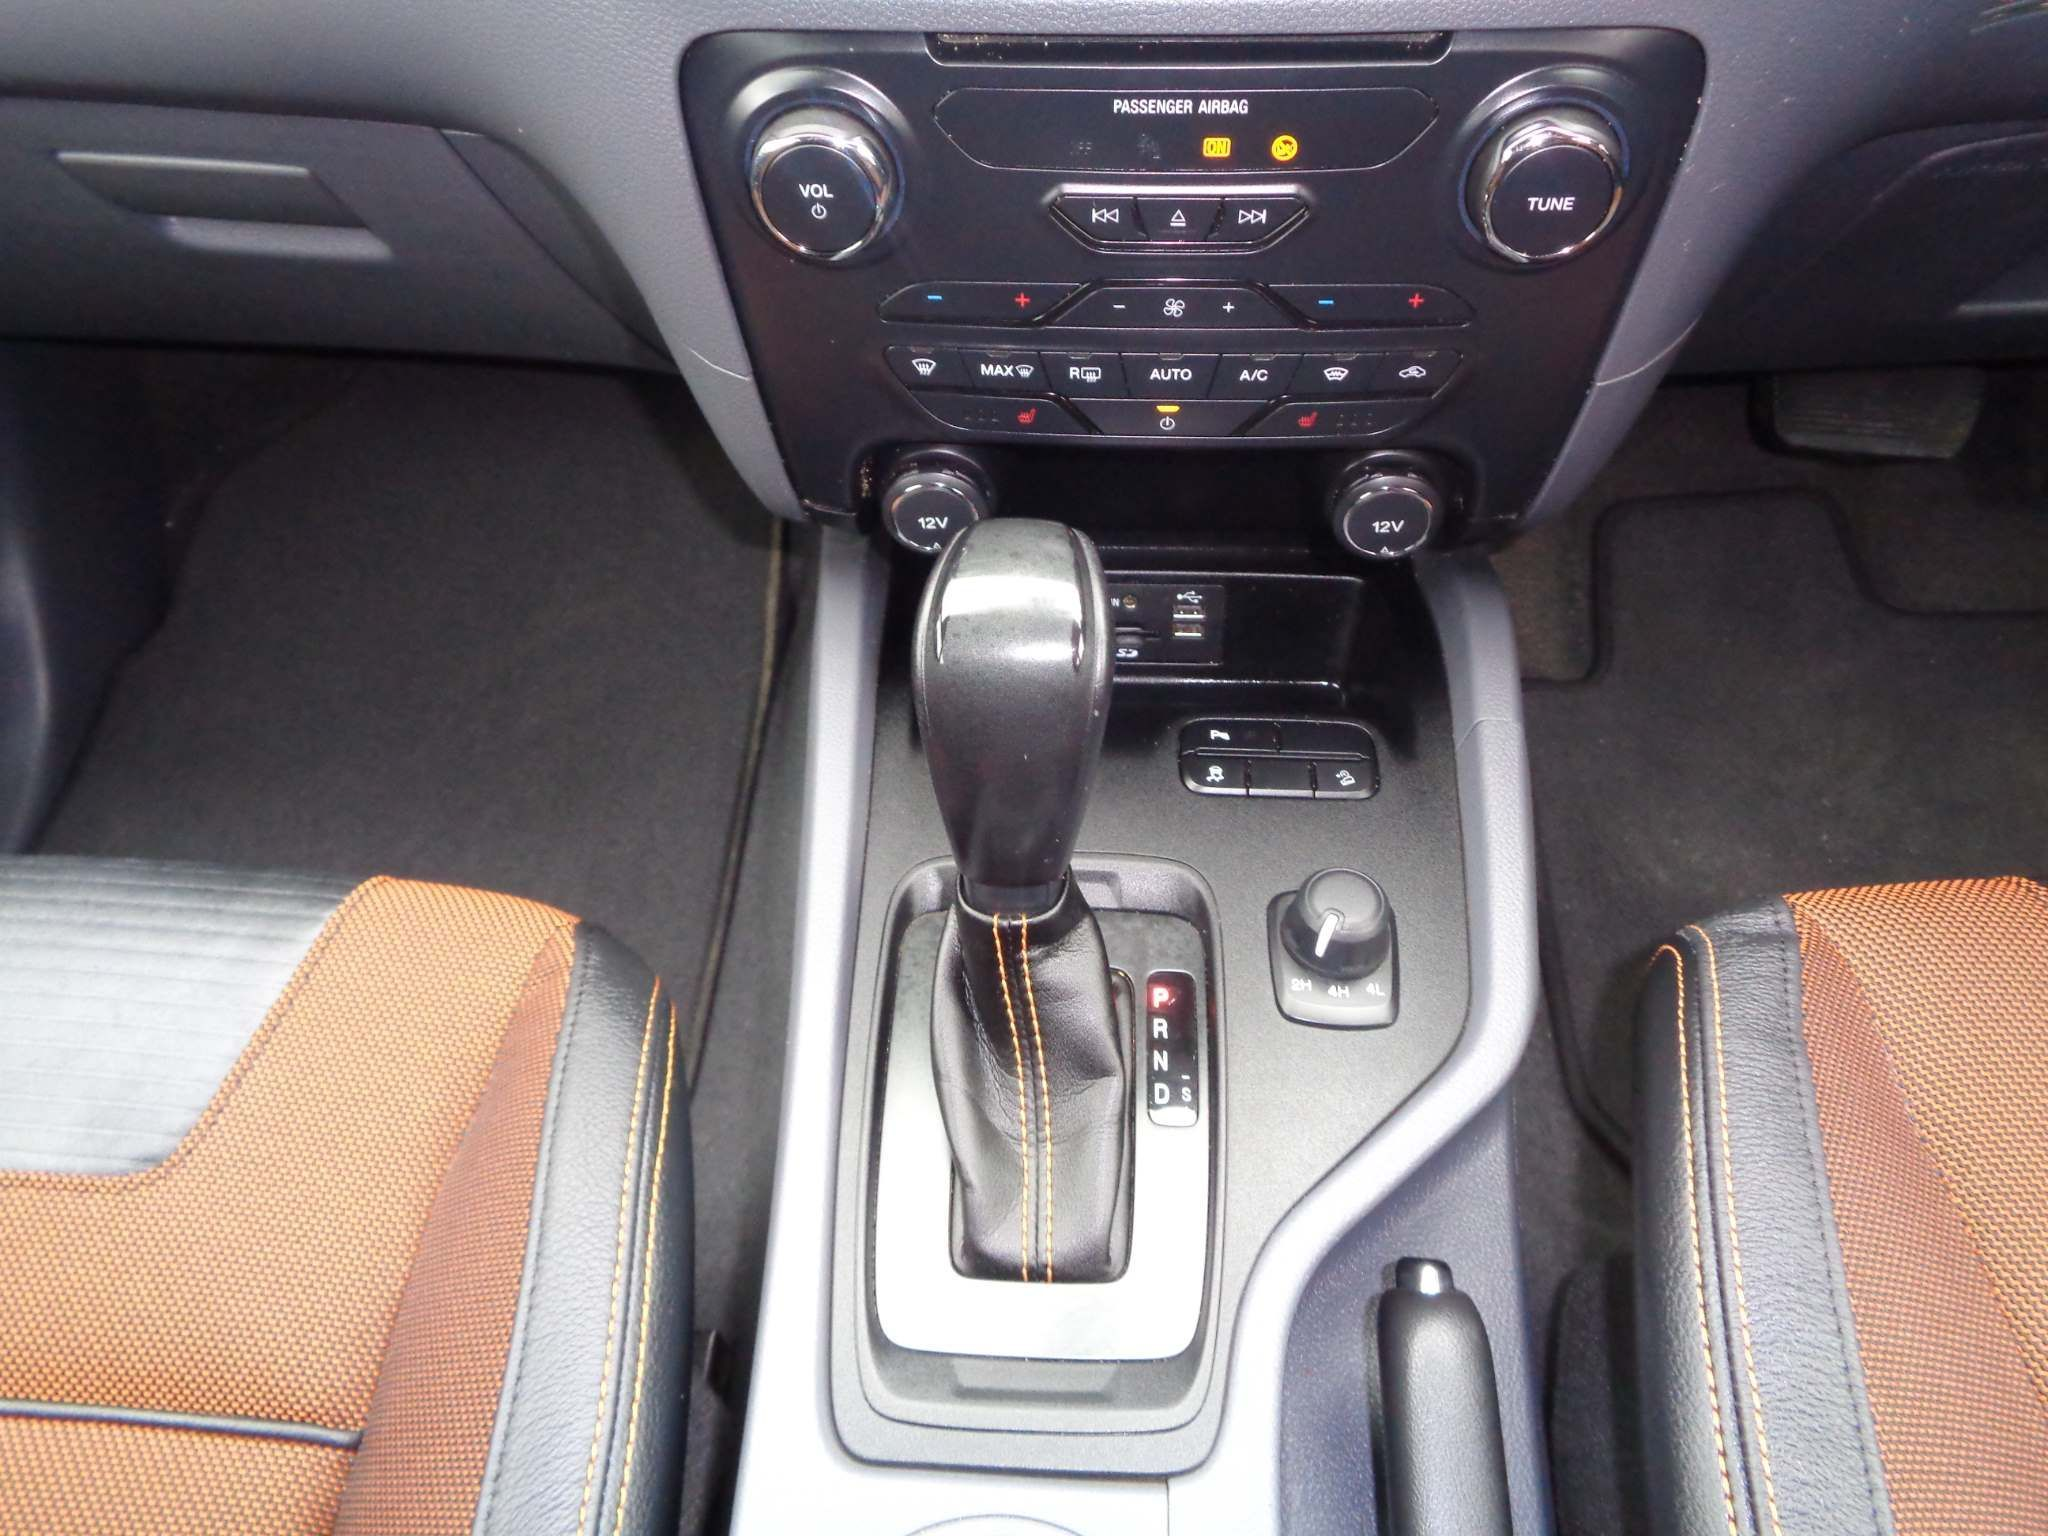 http://pictures2.autotrader.co.uk/imgser-uk/servlet/media?id=aed6452a5e484c1da1038f9f01a81163